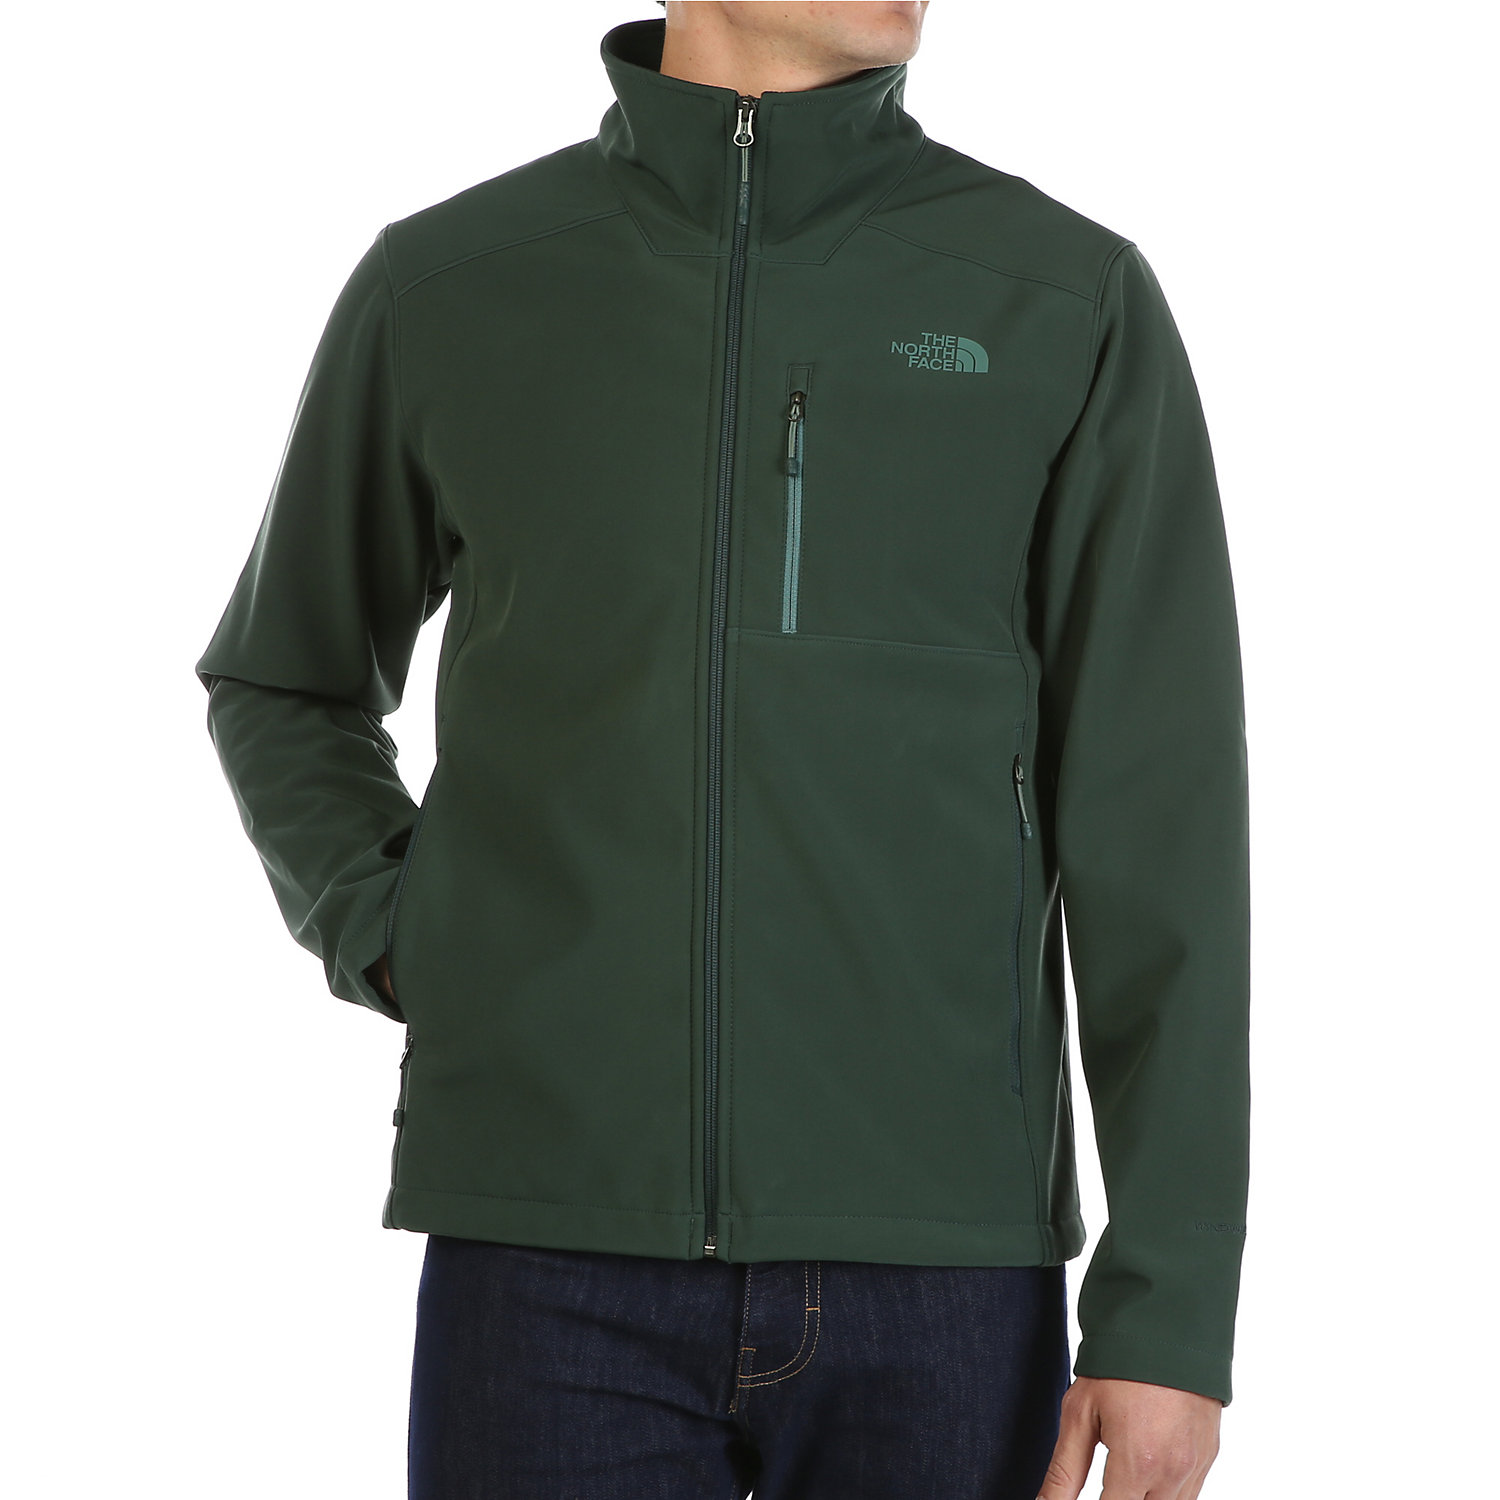 f83b3741cab6 The North Face Men s Apex Bionic 2 Jacket - Moosejaw